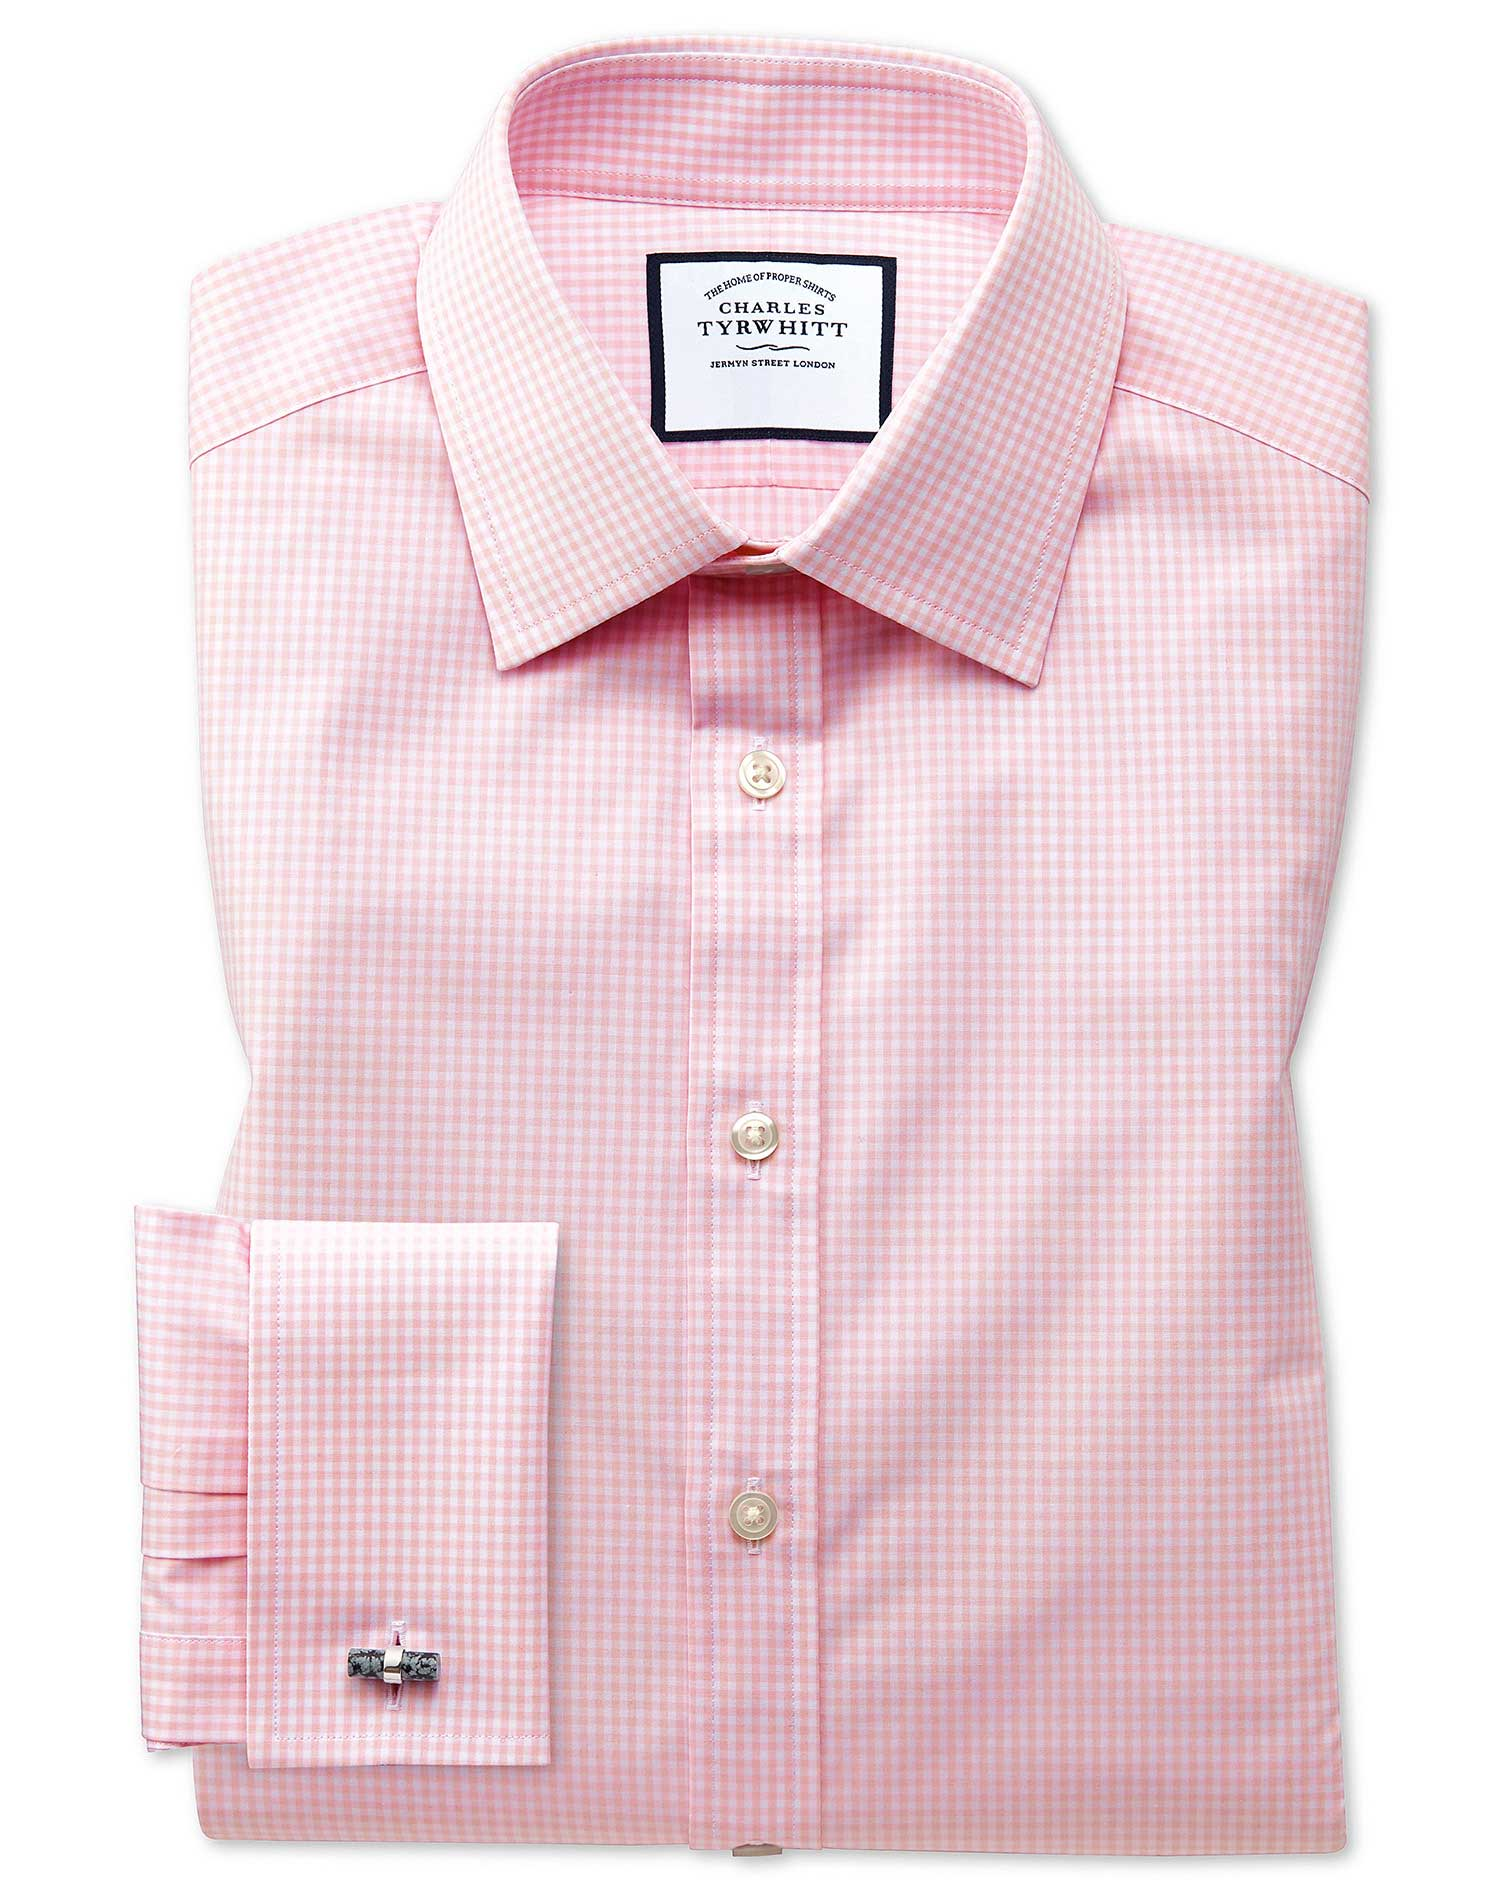 Classic Fit Small Gingham Light Pink Cotton Formal Shirt Double Cuff Size 15/33 by Charles Tyrwhitt